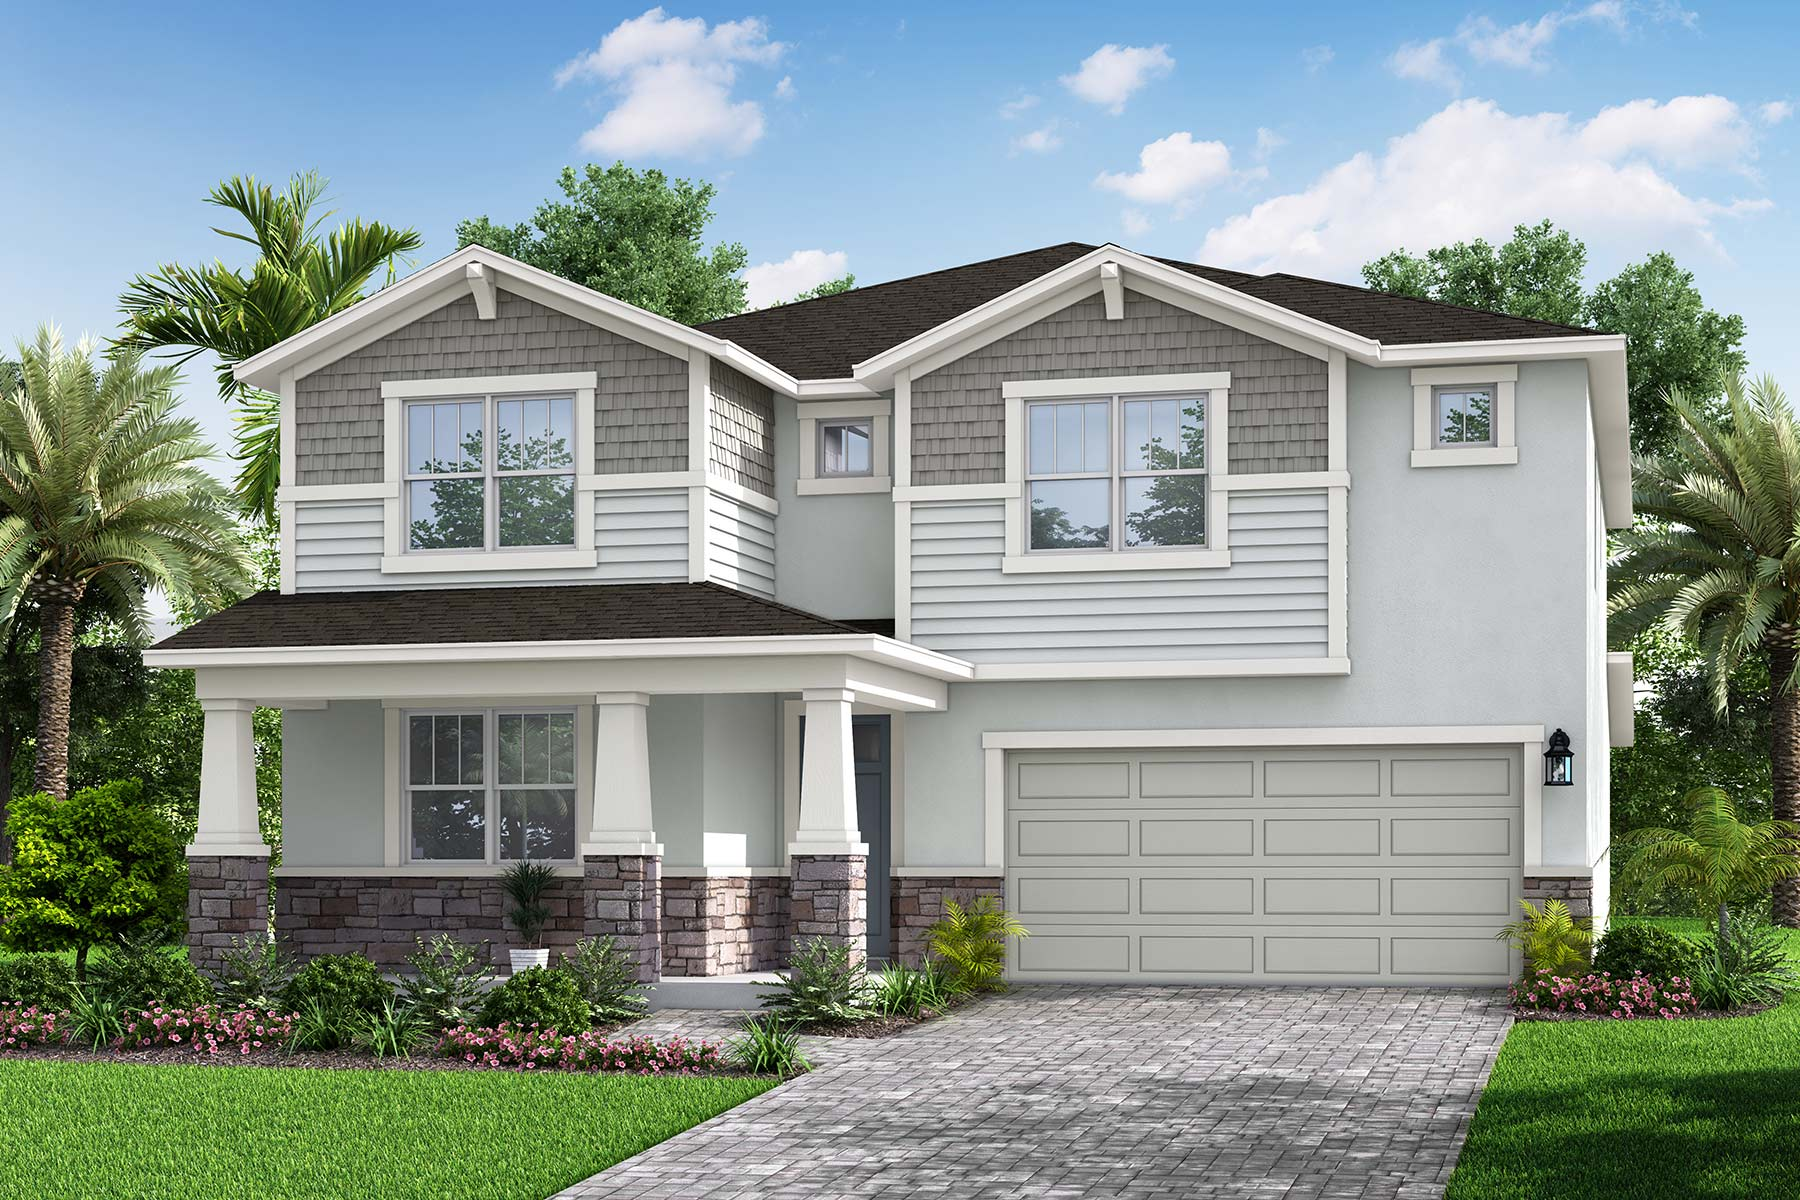 Seville Plan Elevation Front at Parkview at Long Lake Ranch in Lutz Florida by Mattamy Homes